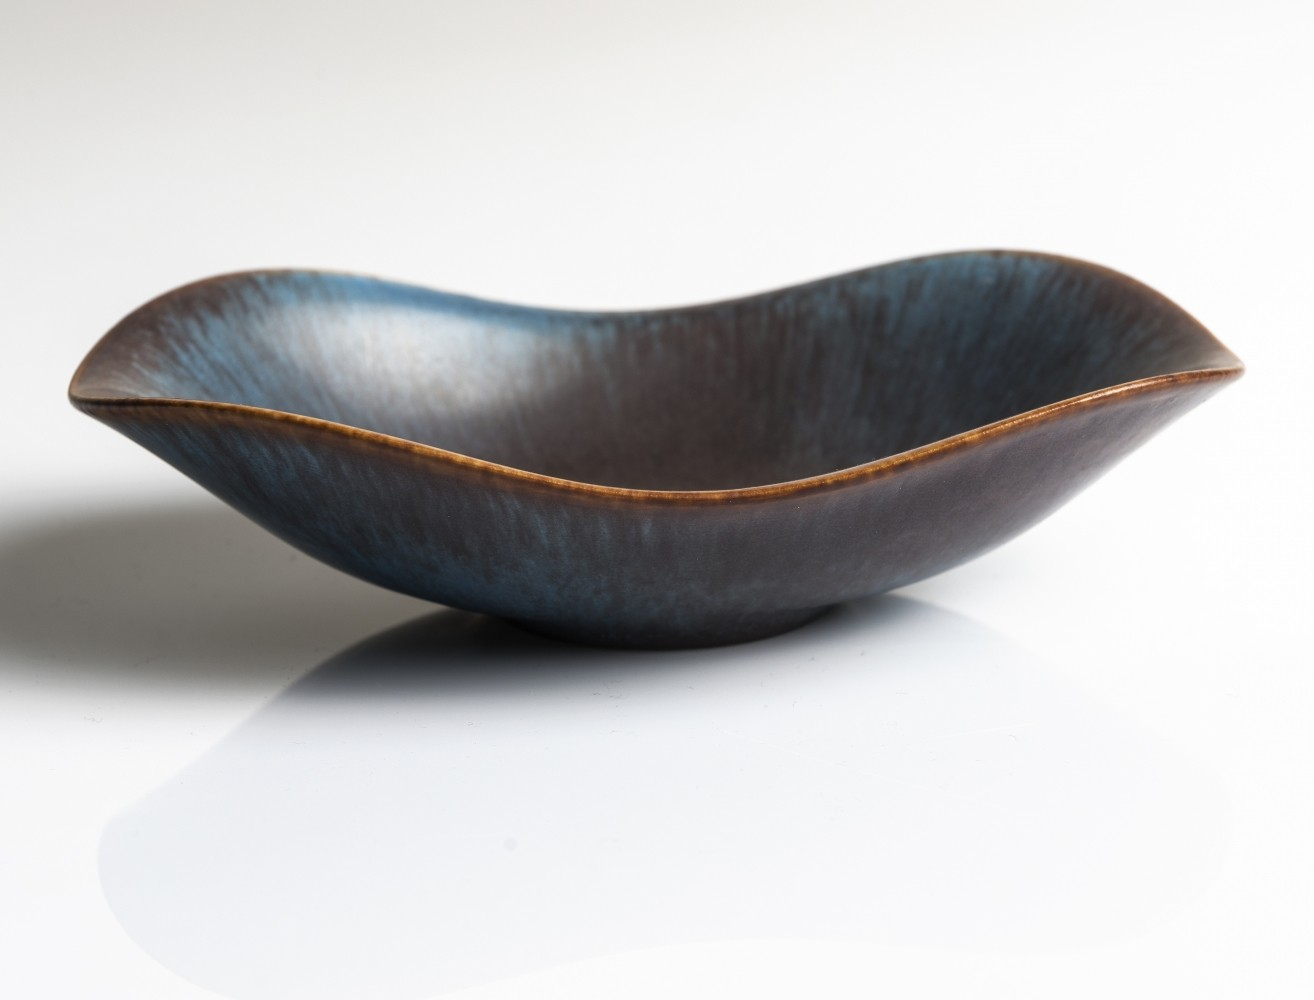 ARF Biomorphic Bowl by Gunnar Nylund for Rörstrand, 1950s